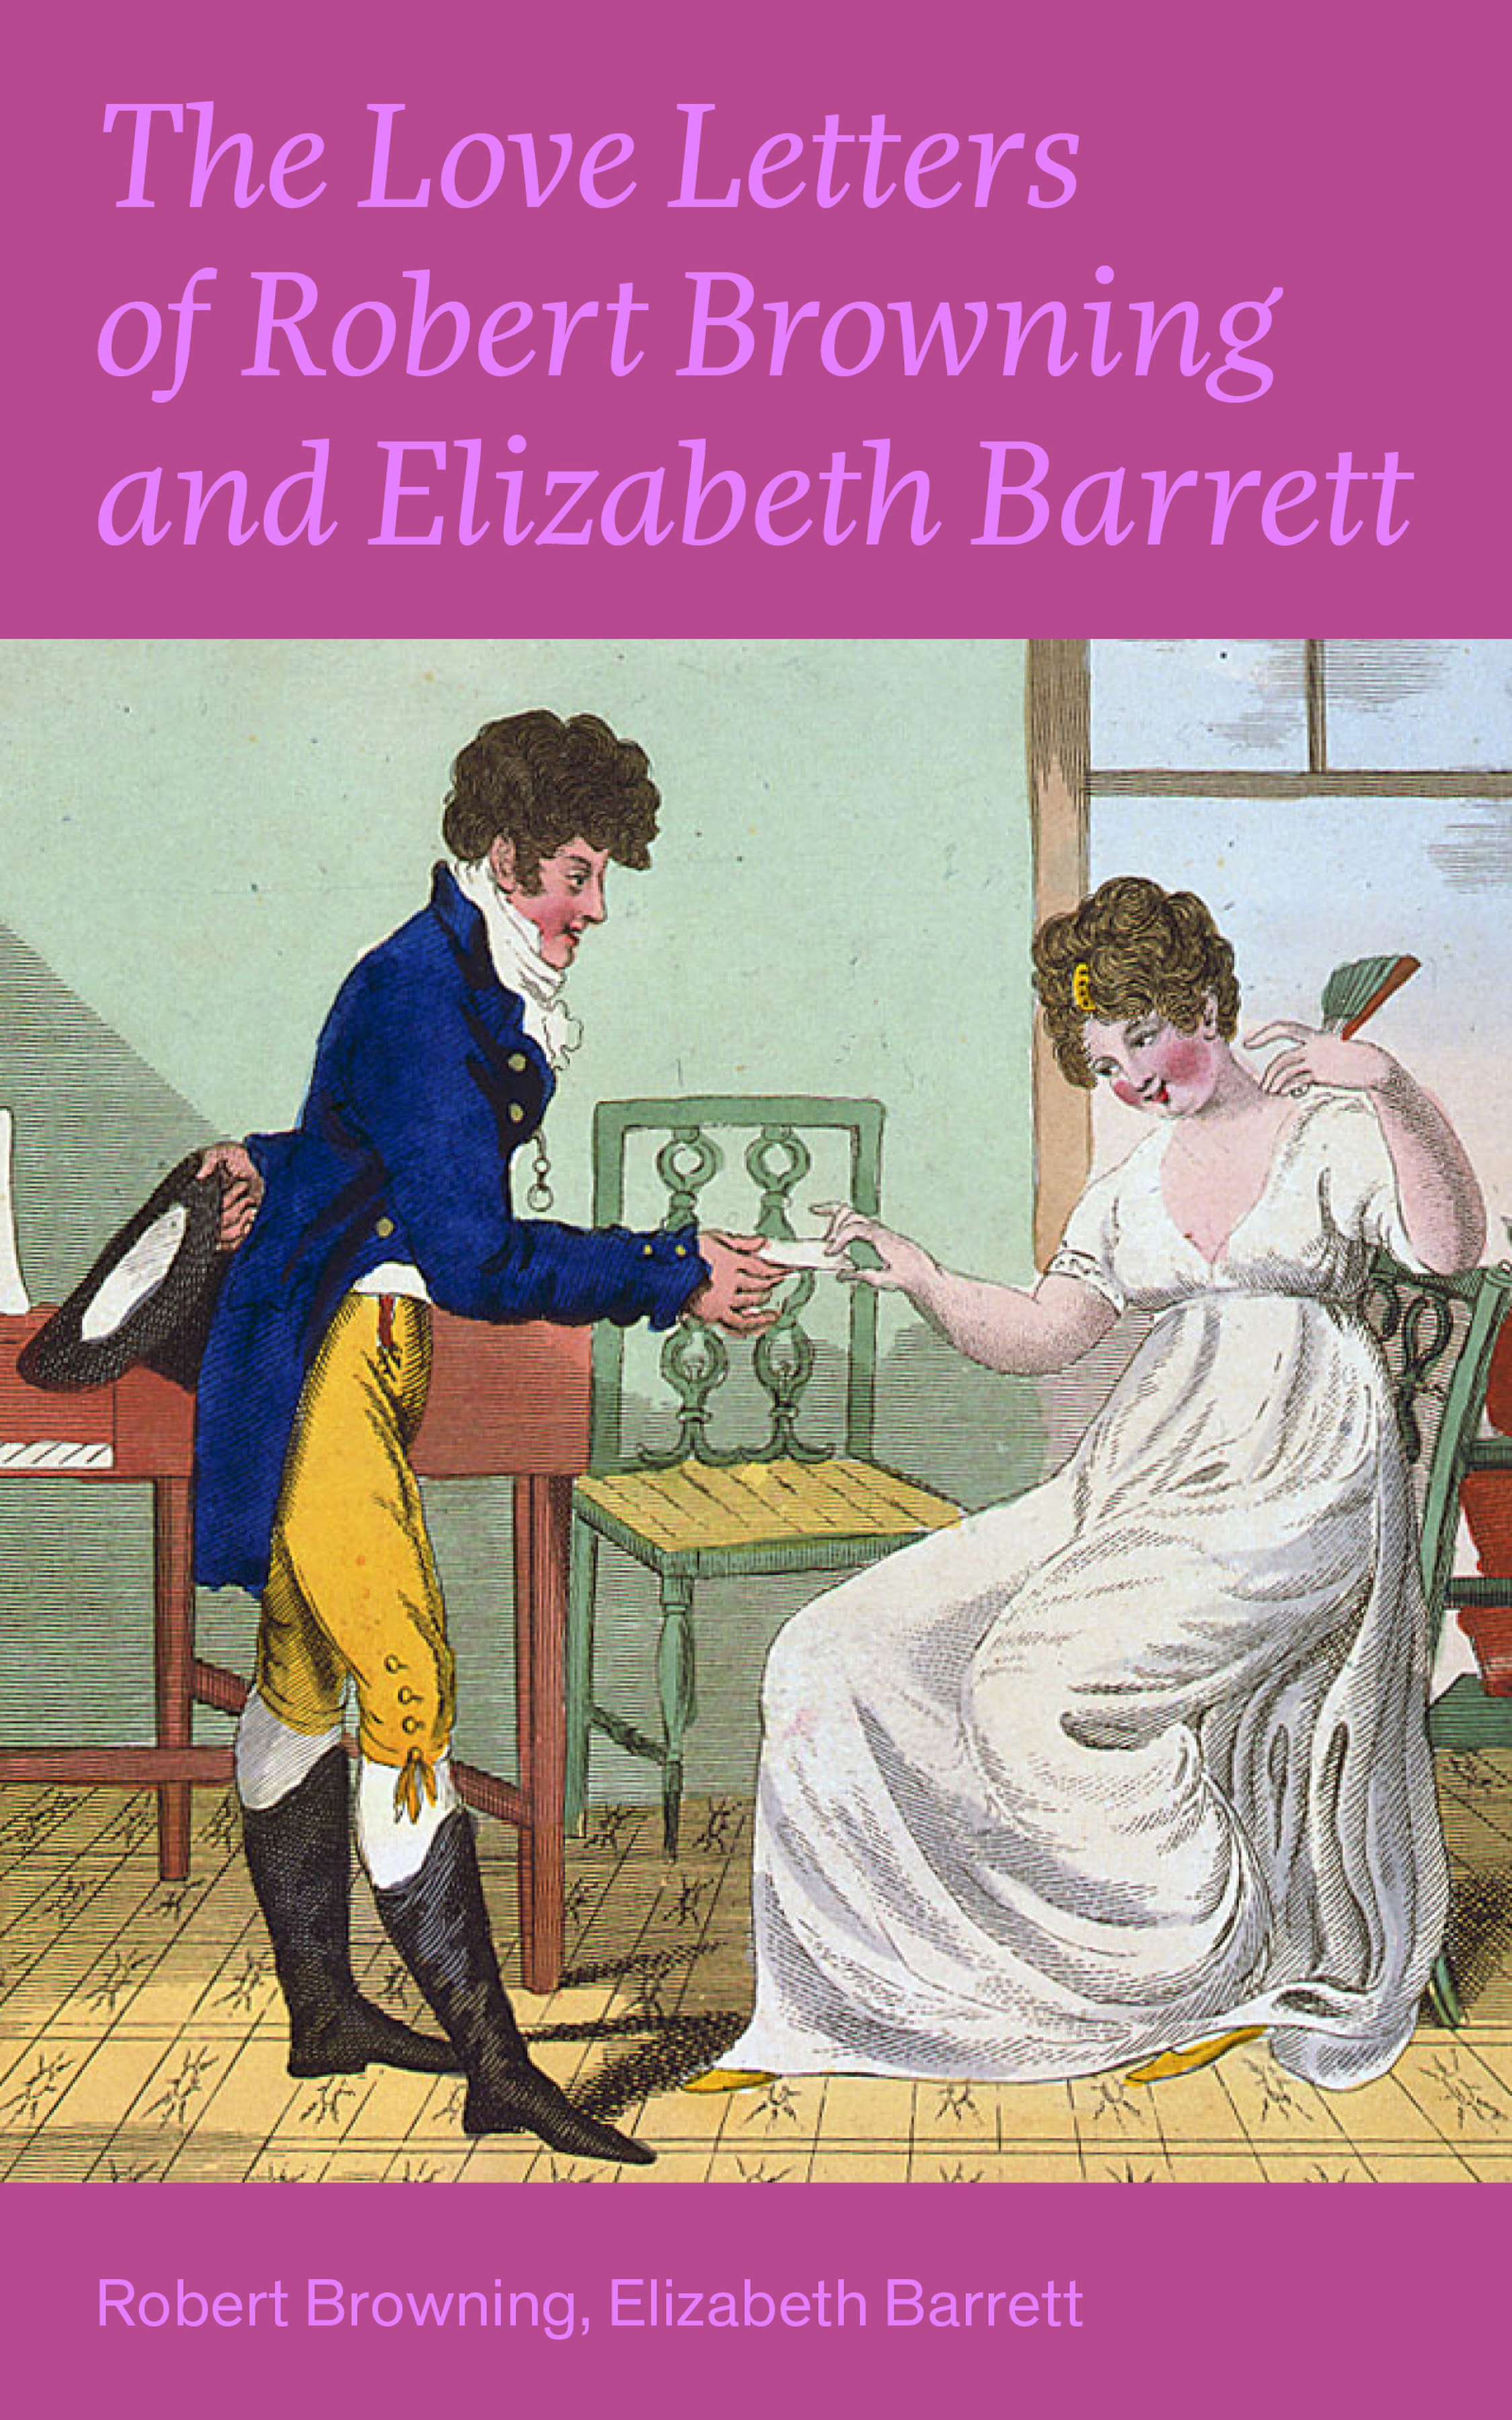 Robert Browning The Love Letters of Robert Browning and Elizabeth Barrett Barrett: Romantic Correspondence between two great poets of the Victorian era (Featuring Extensive Illustrated Biographies) цена и фото